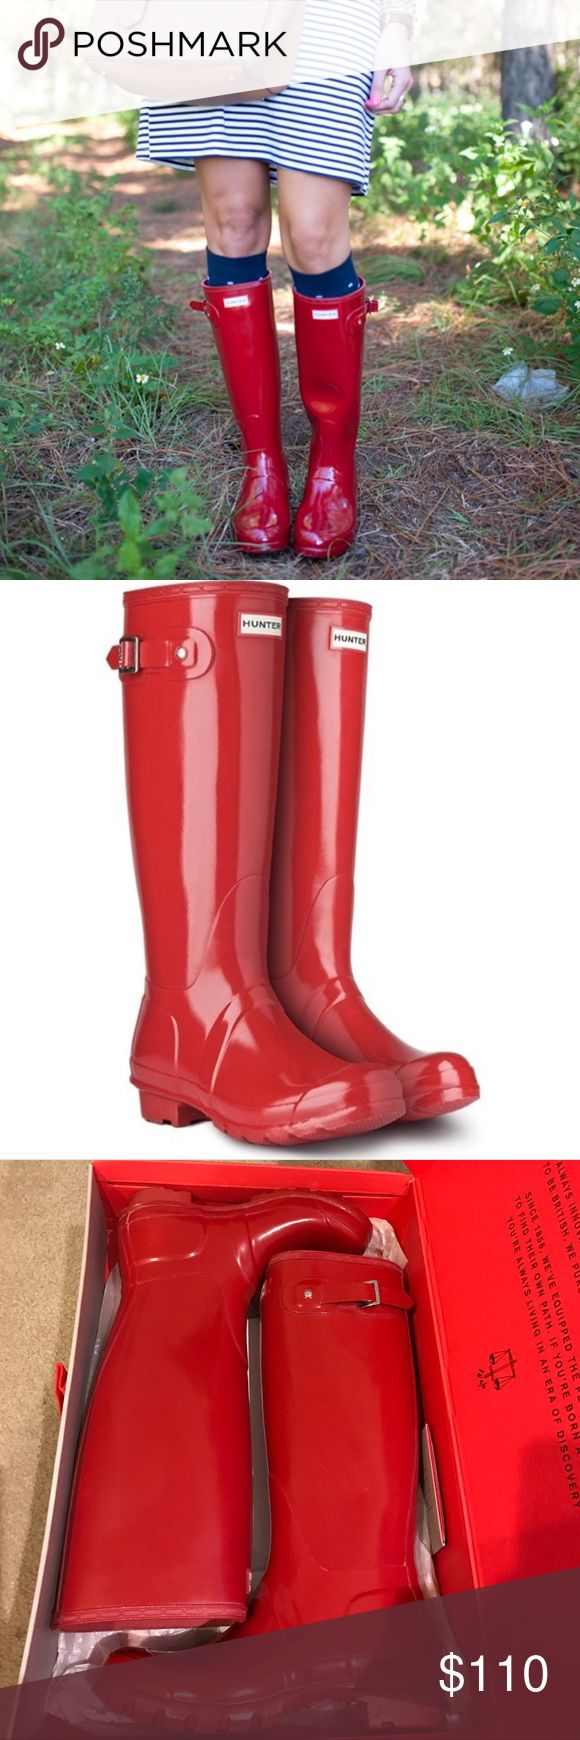 Hunter original tall gloss red rain boots new! Brand new in box. Military red color. Authentic Hunter Boots Shoes Winter & Rain Boots